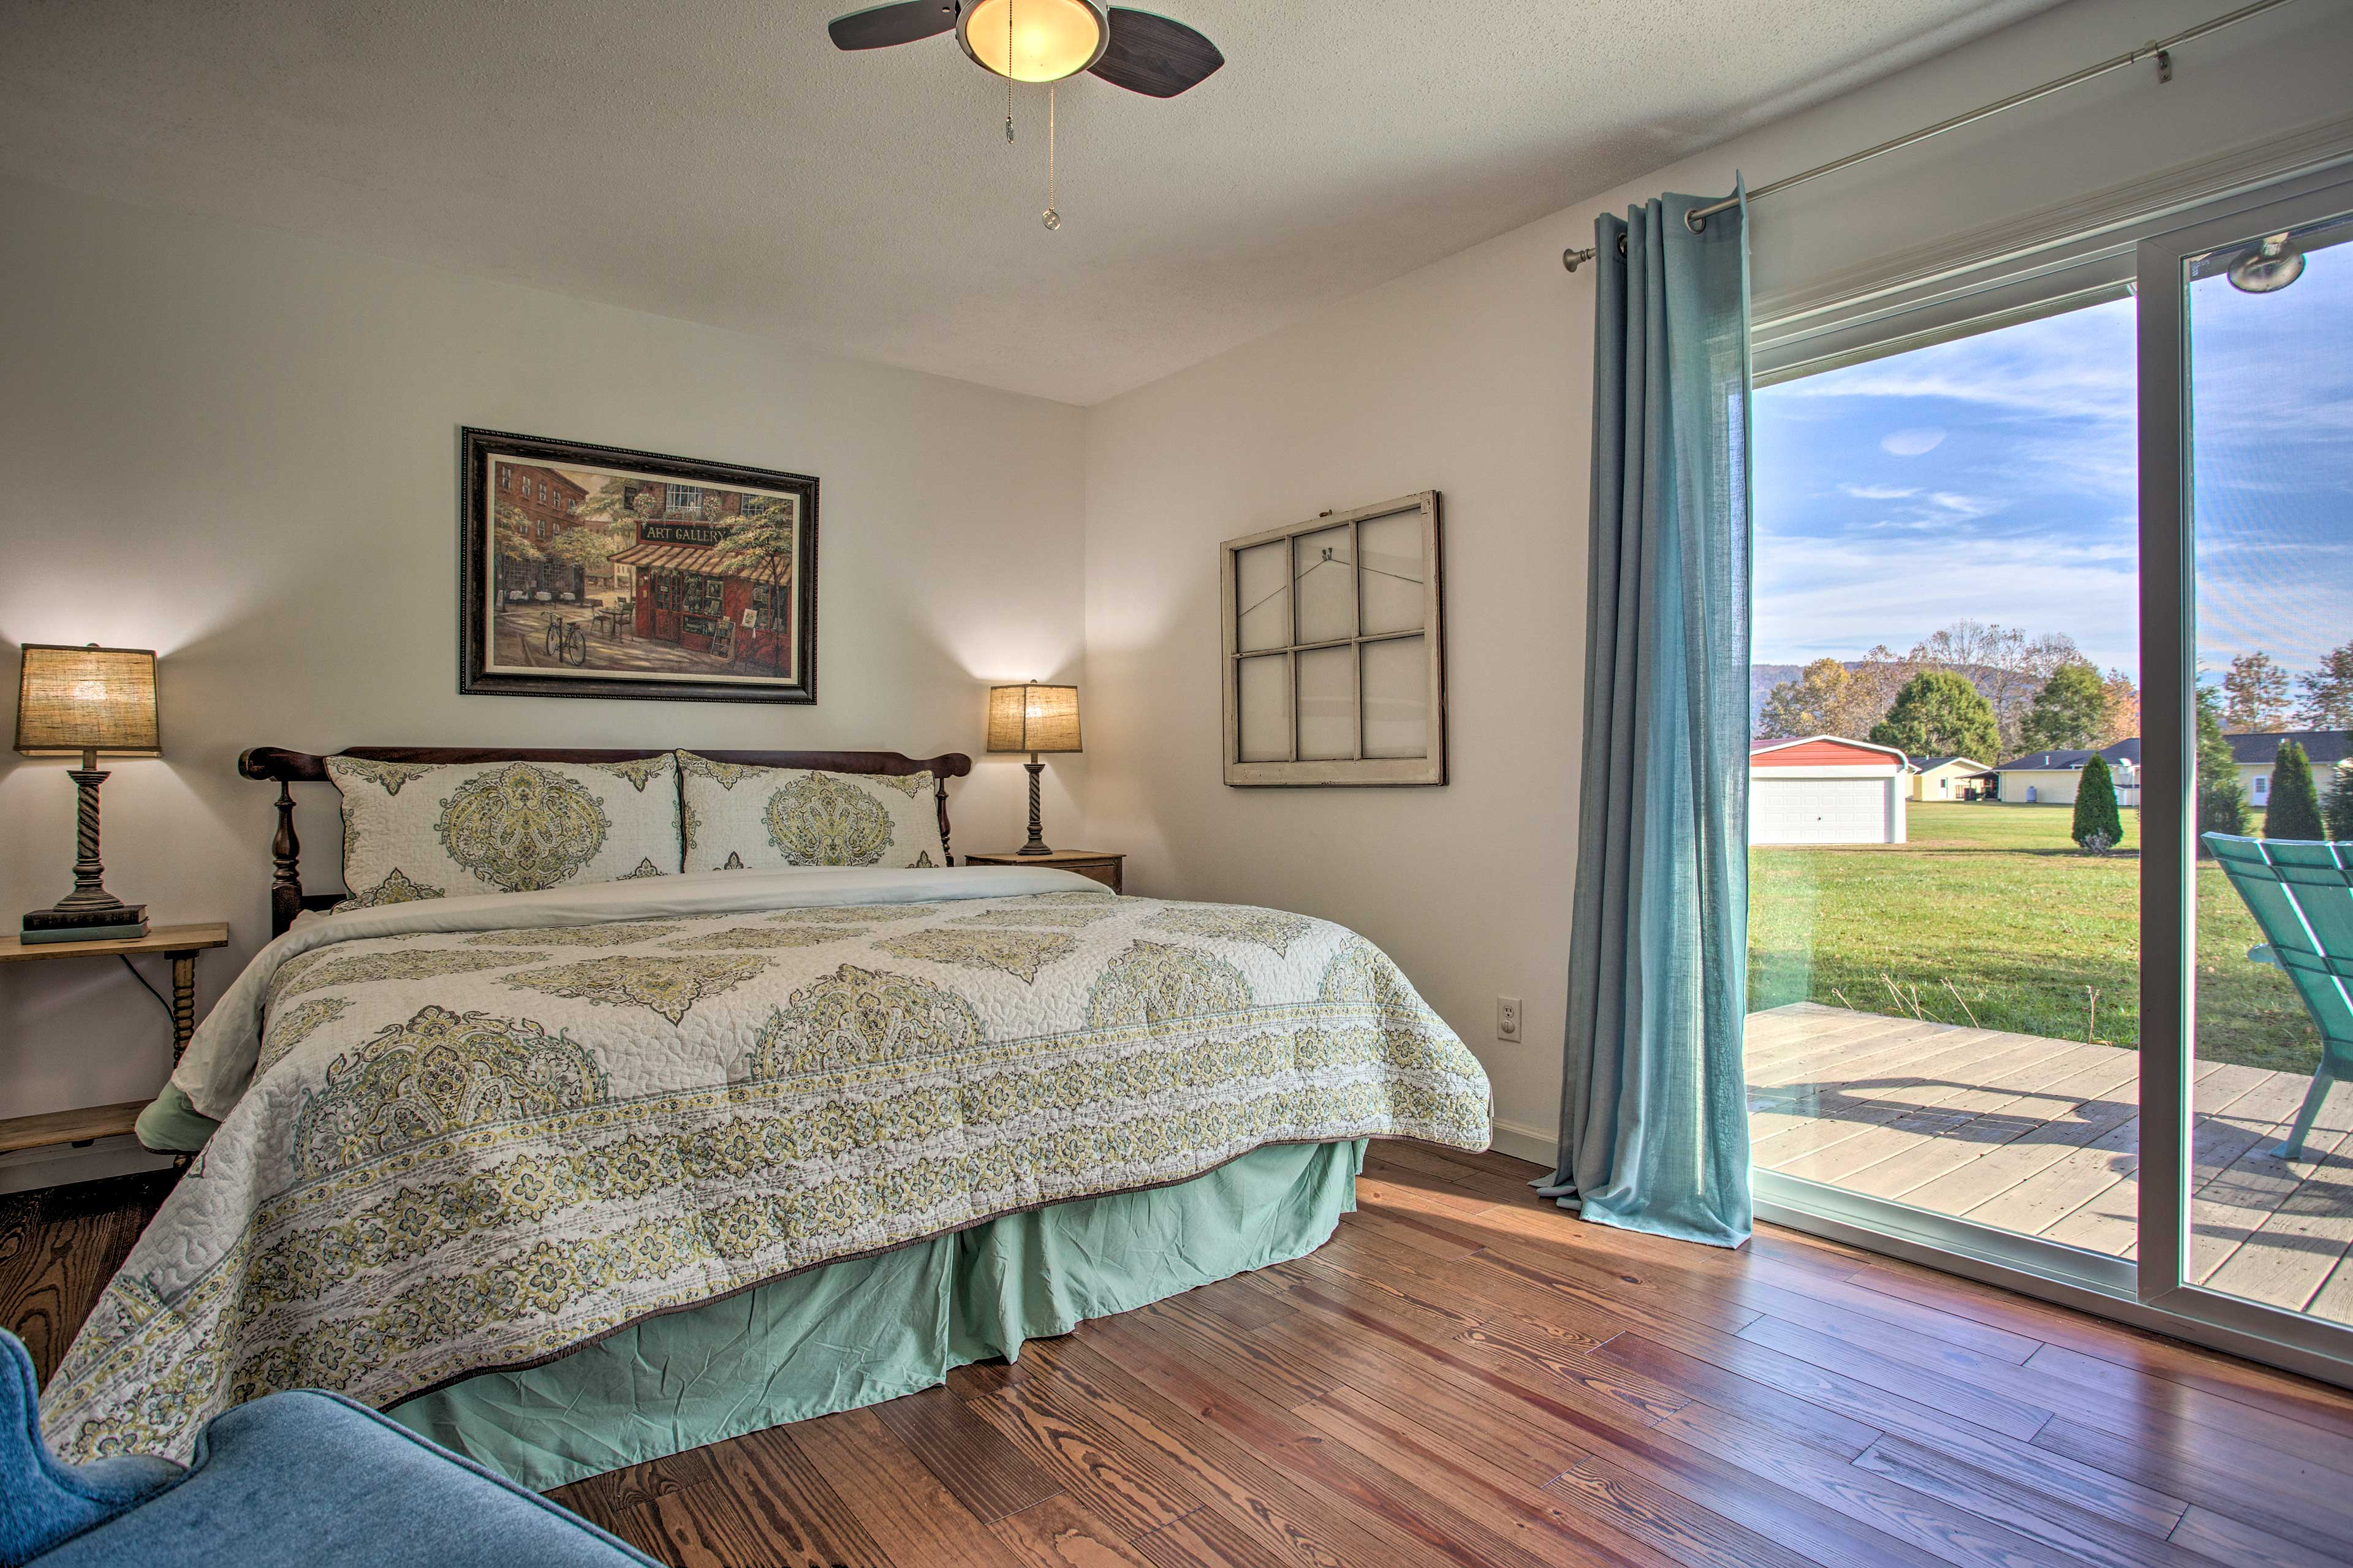 The master bedroom boasts deck access and a king-sized bed.